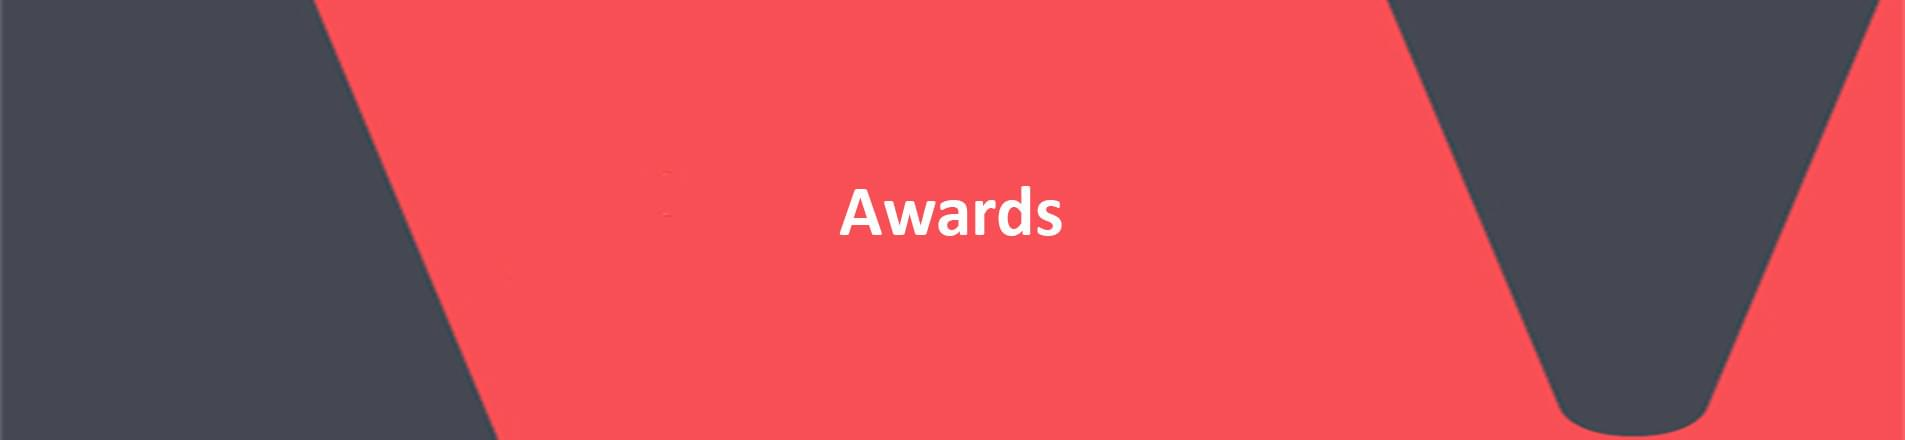 The word Awards in white on a red VERCIDA branded background